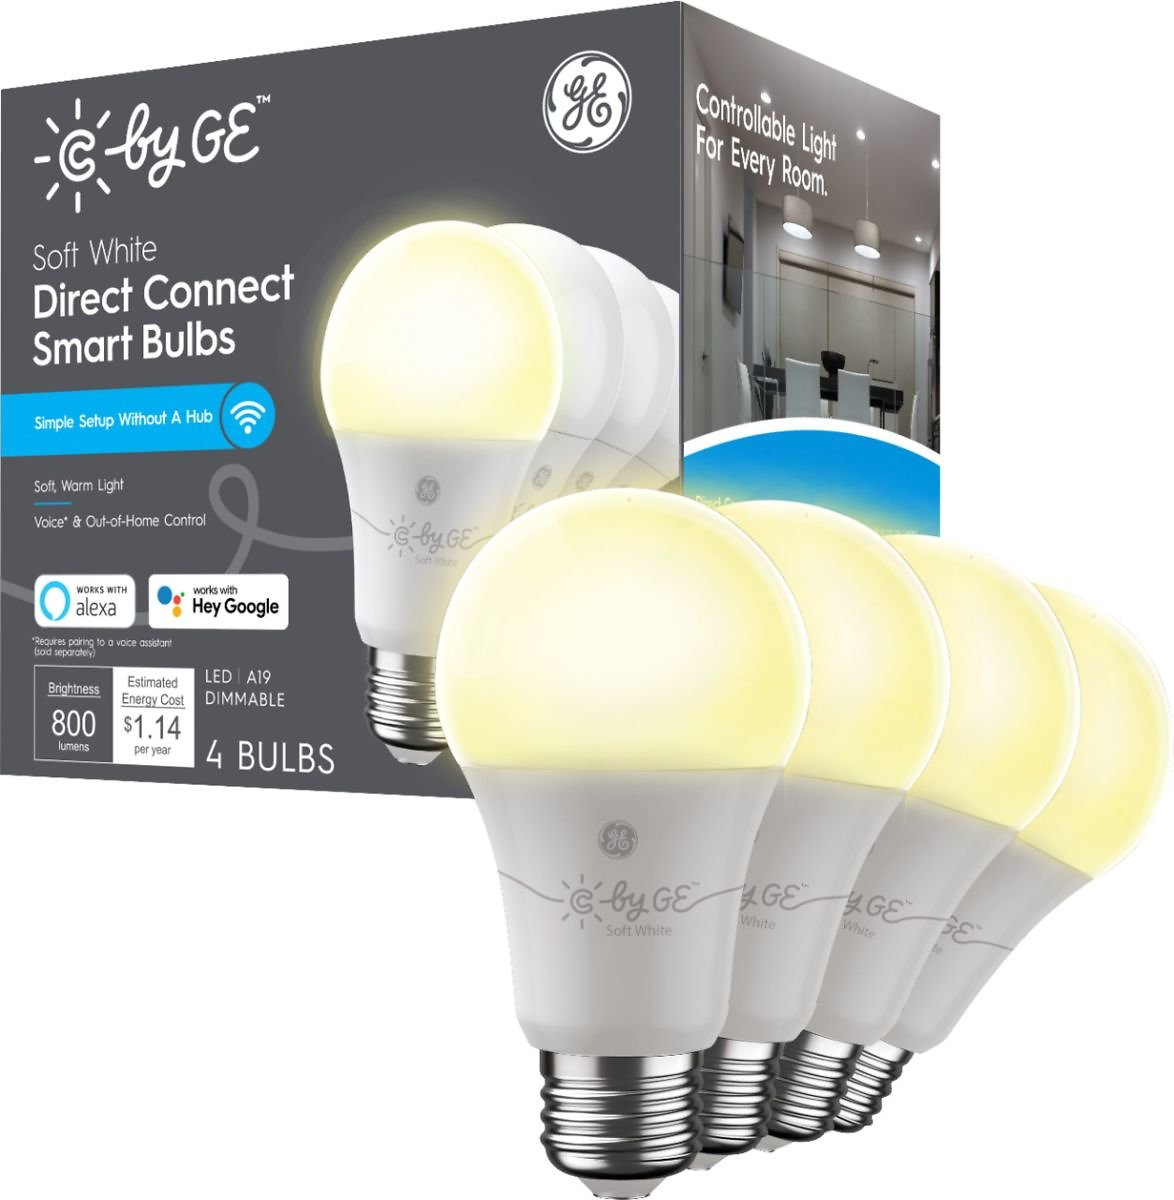 4-Pk C by GE Soft White Direct Connect Light Bulbs 60W